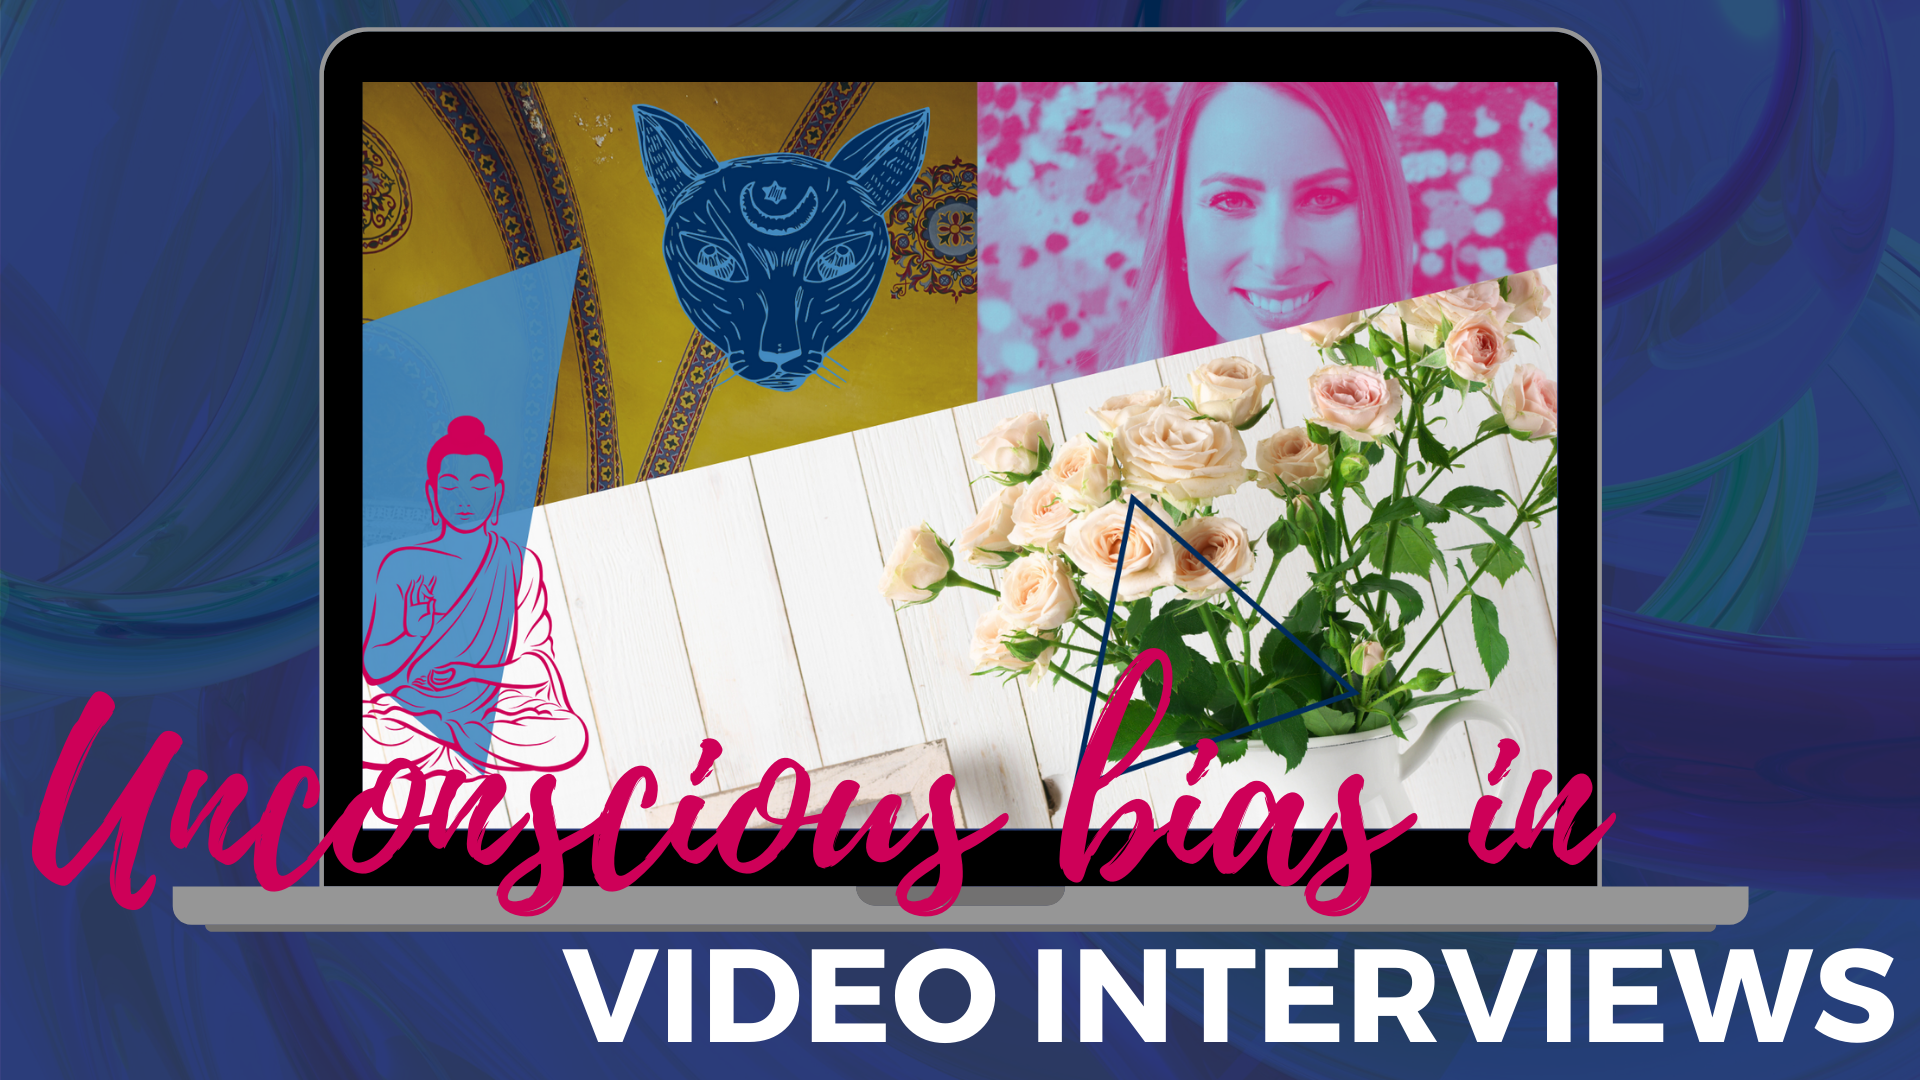 Video Interviewing: Rustic décor, buddha, and litter boxes, OH MY!